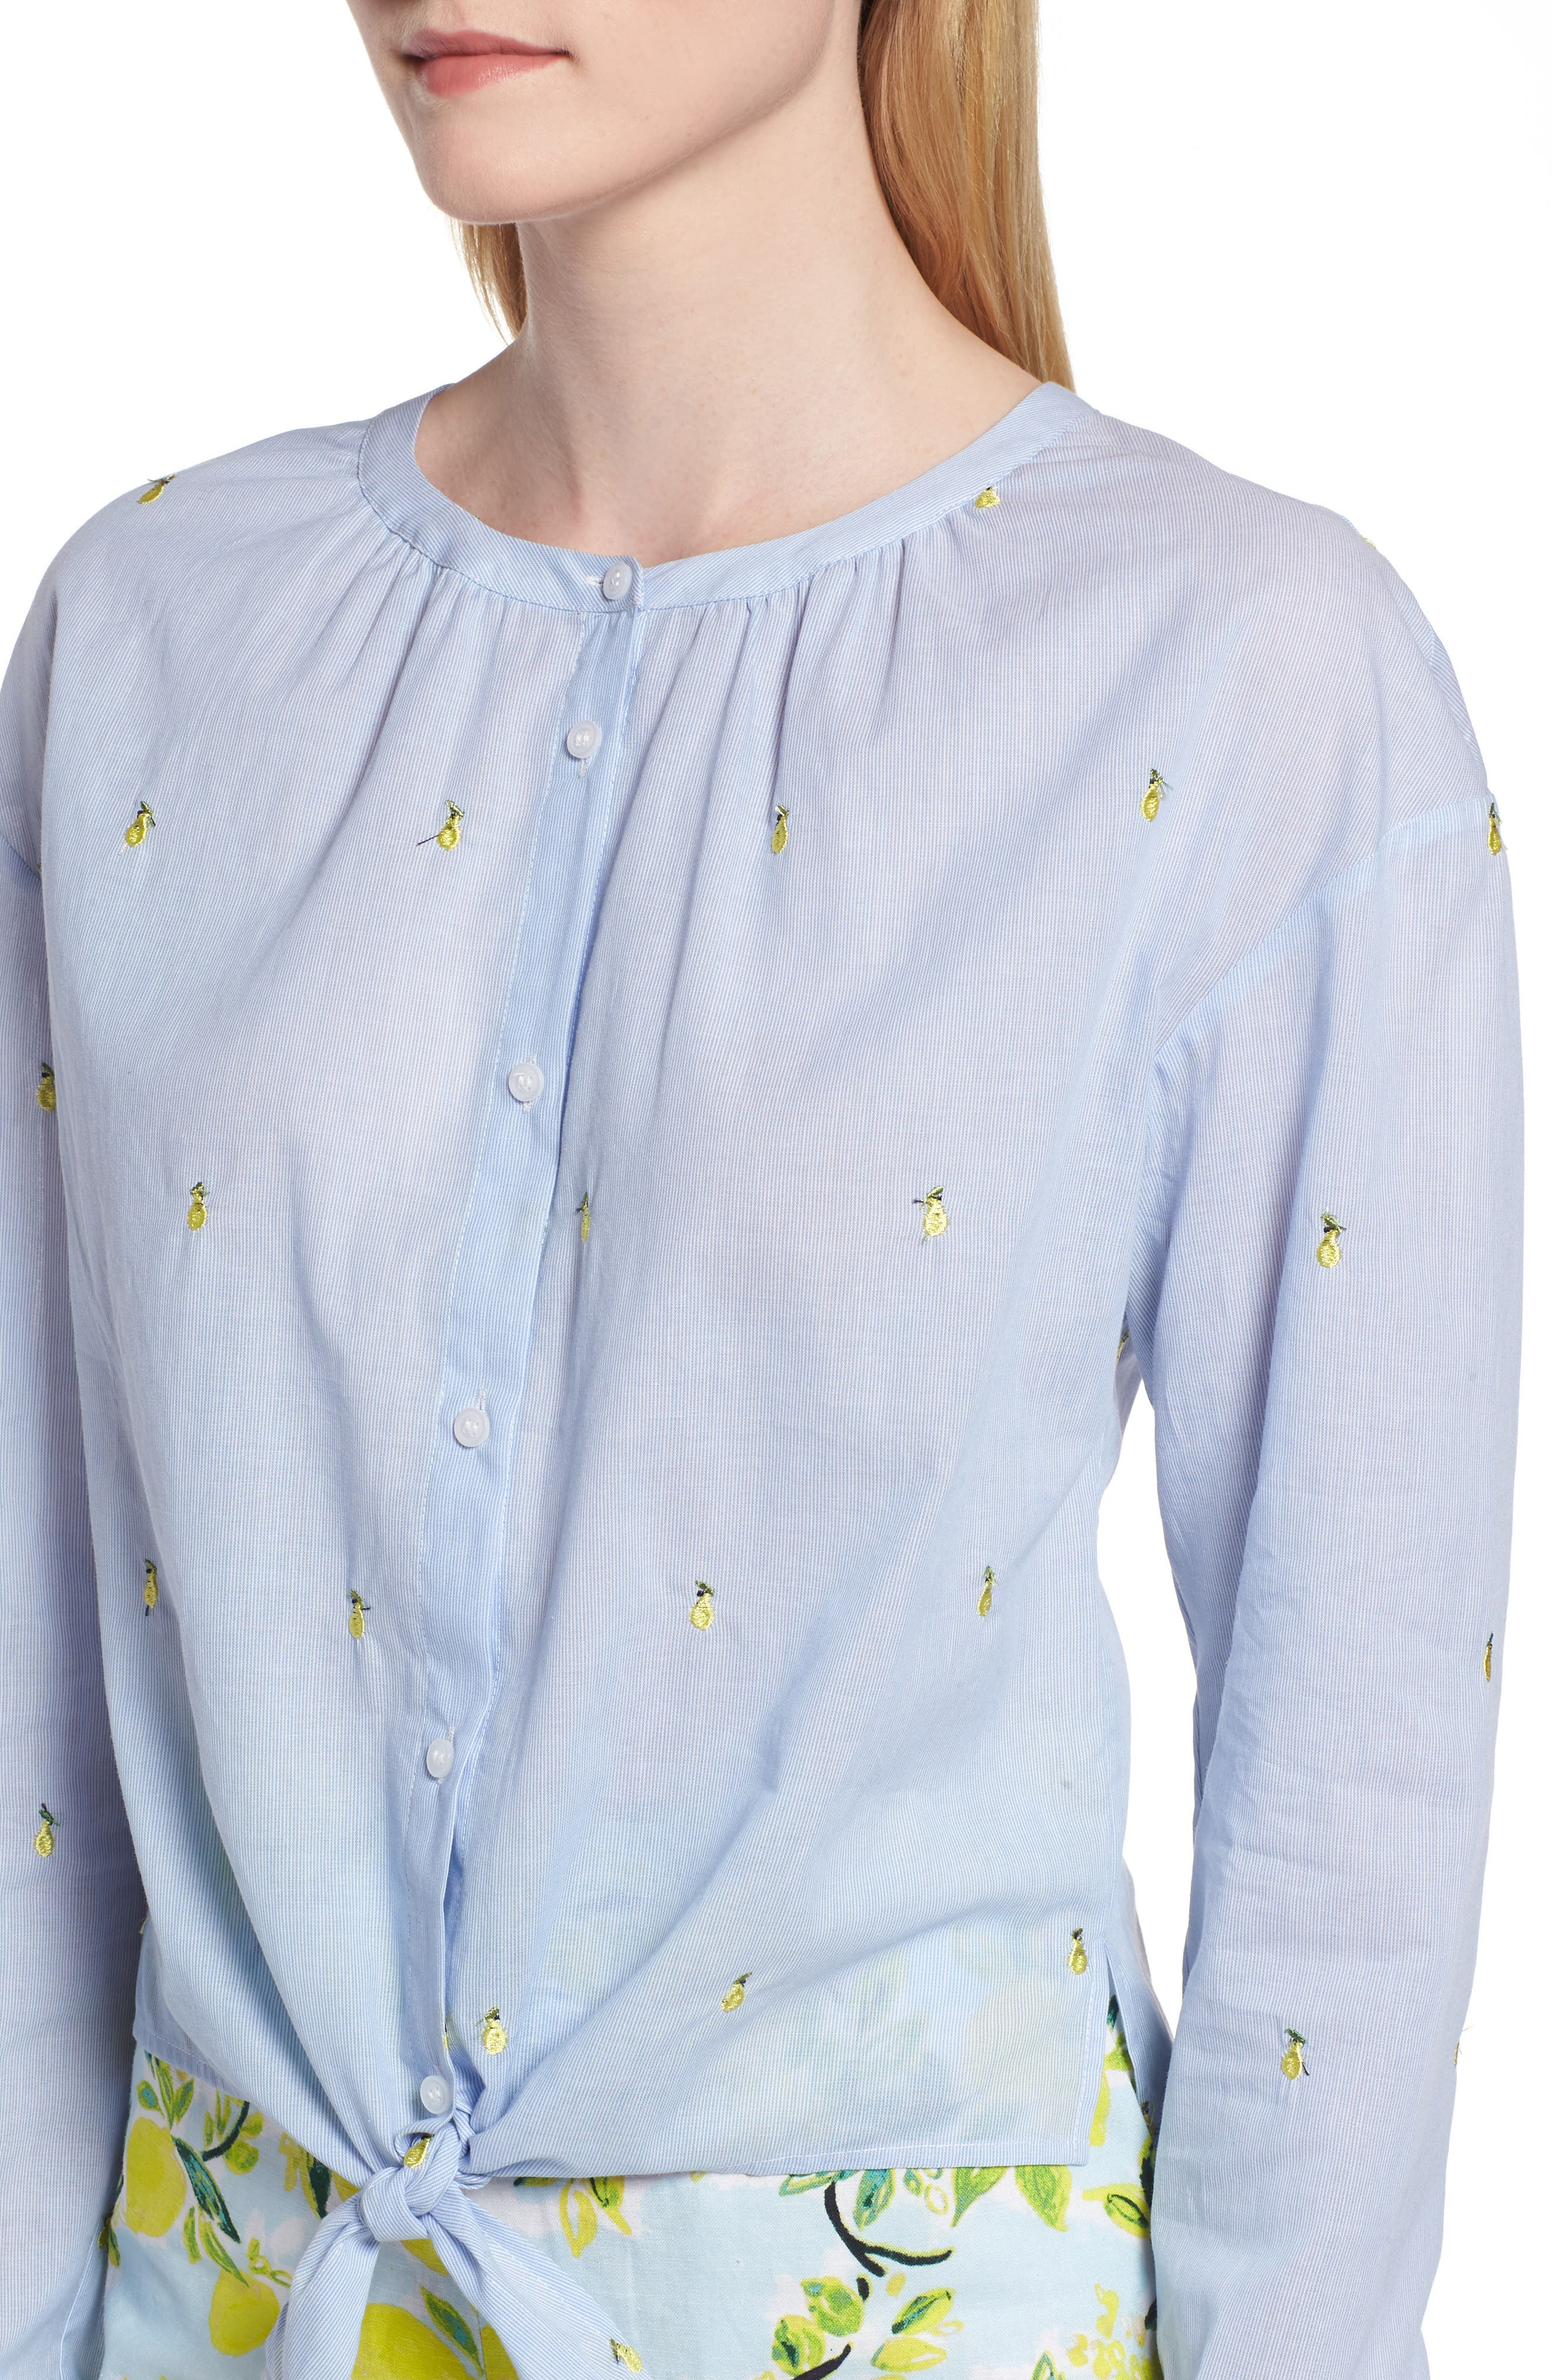 Embroidery Tie Front Cotton Top,                             Alternate thumbnail 4, color,                             Blue Mini Pear